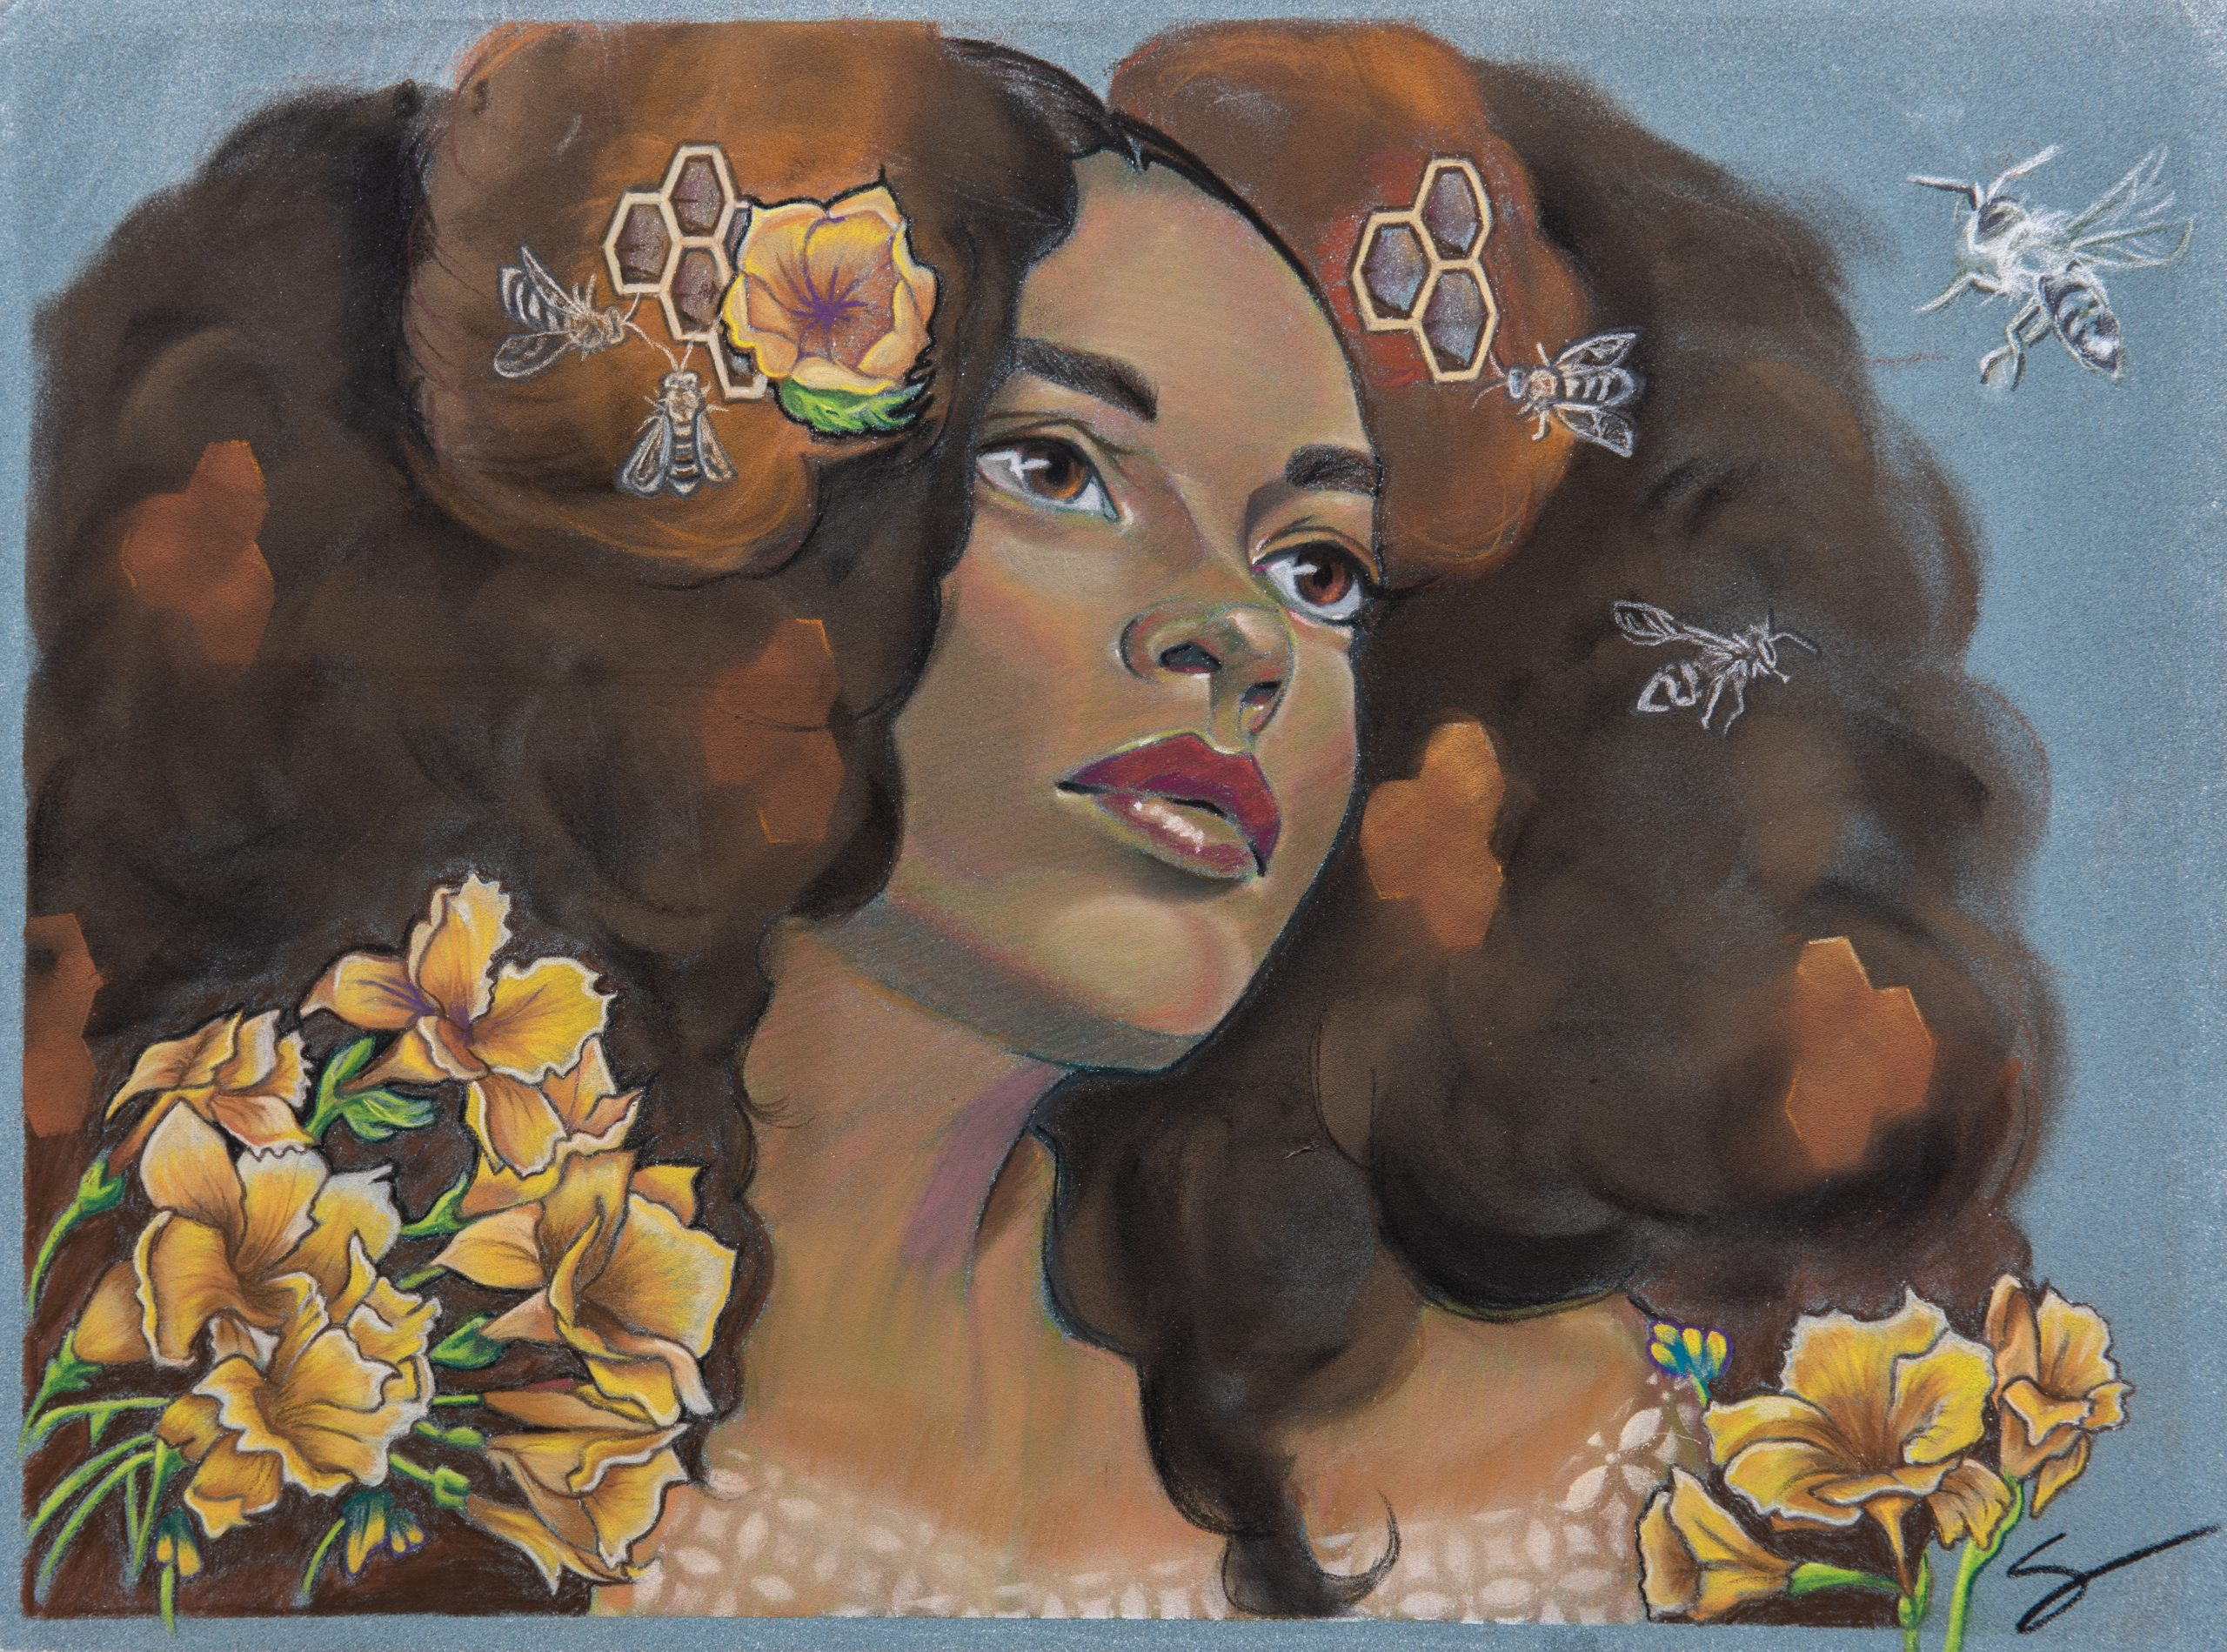 black woman portrait surreal bee bees hive afro puffs